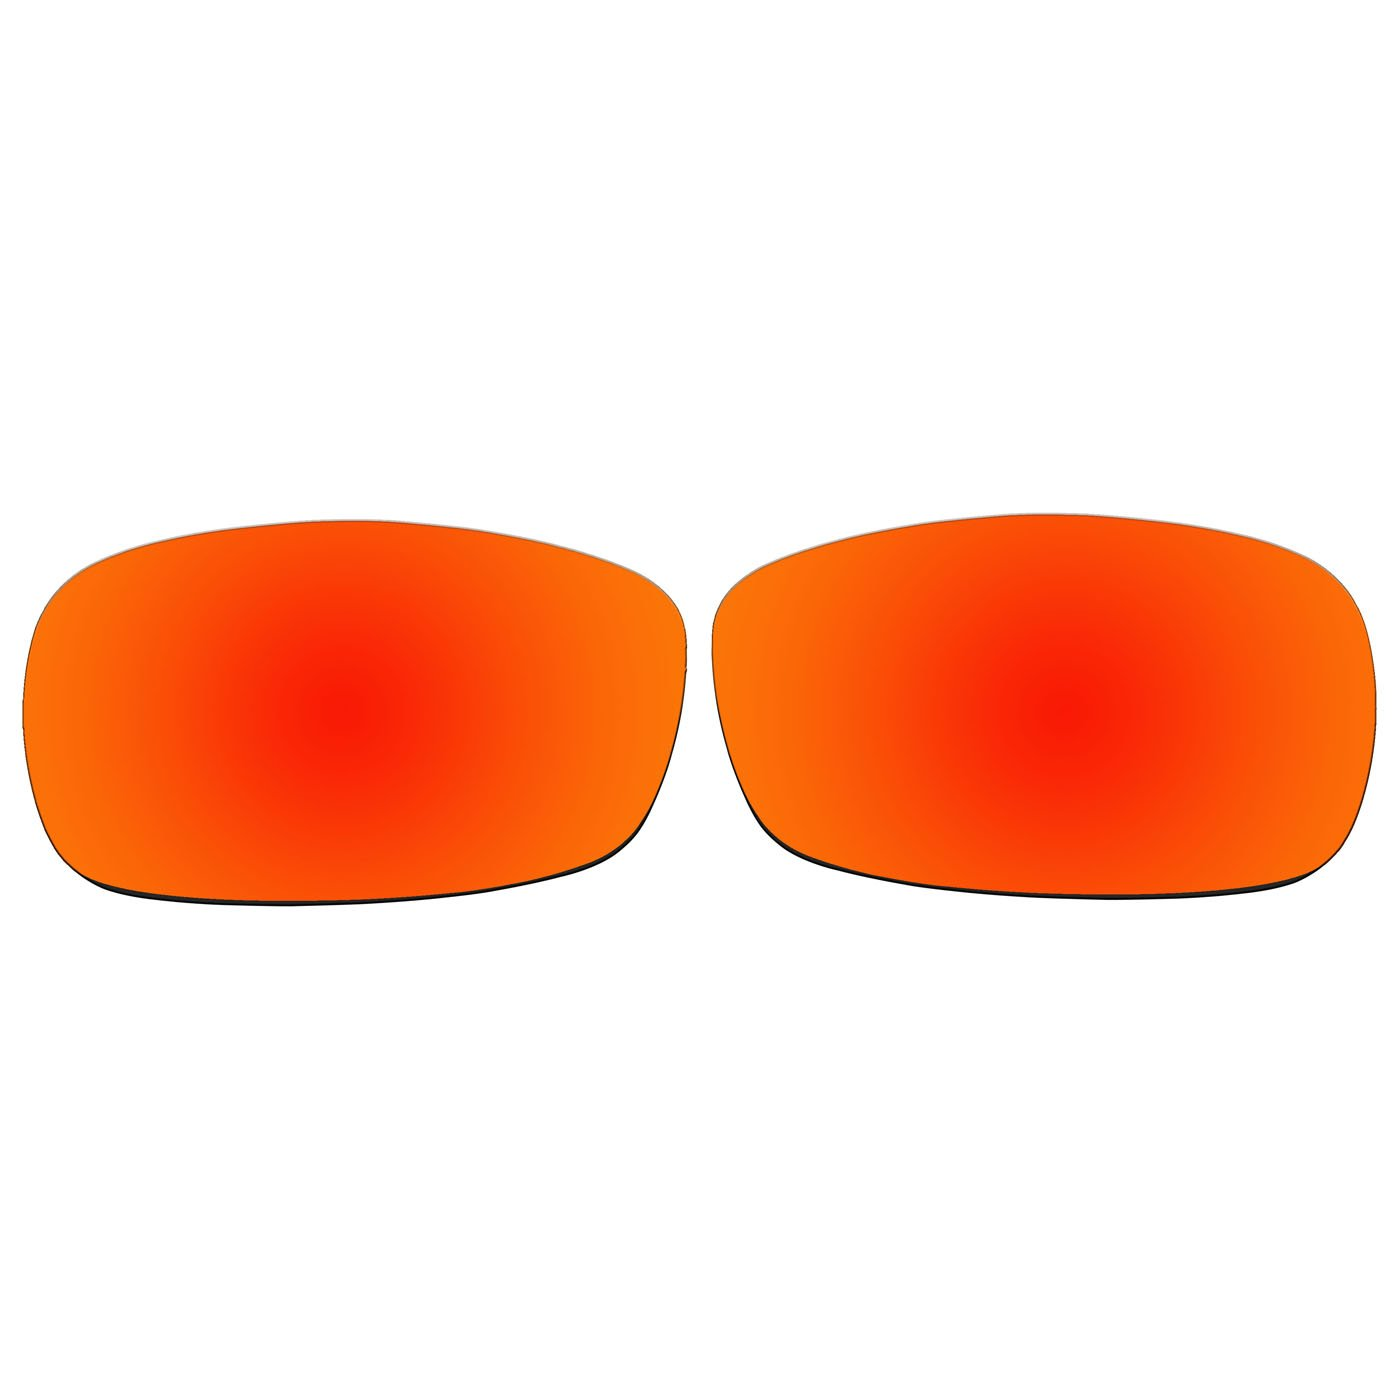 ACOMPATIBLE Replacement Lenses for Oakley Crosshair 2.0 Sunglasses OO4044